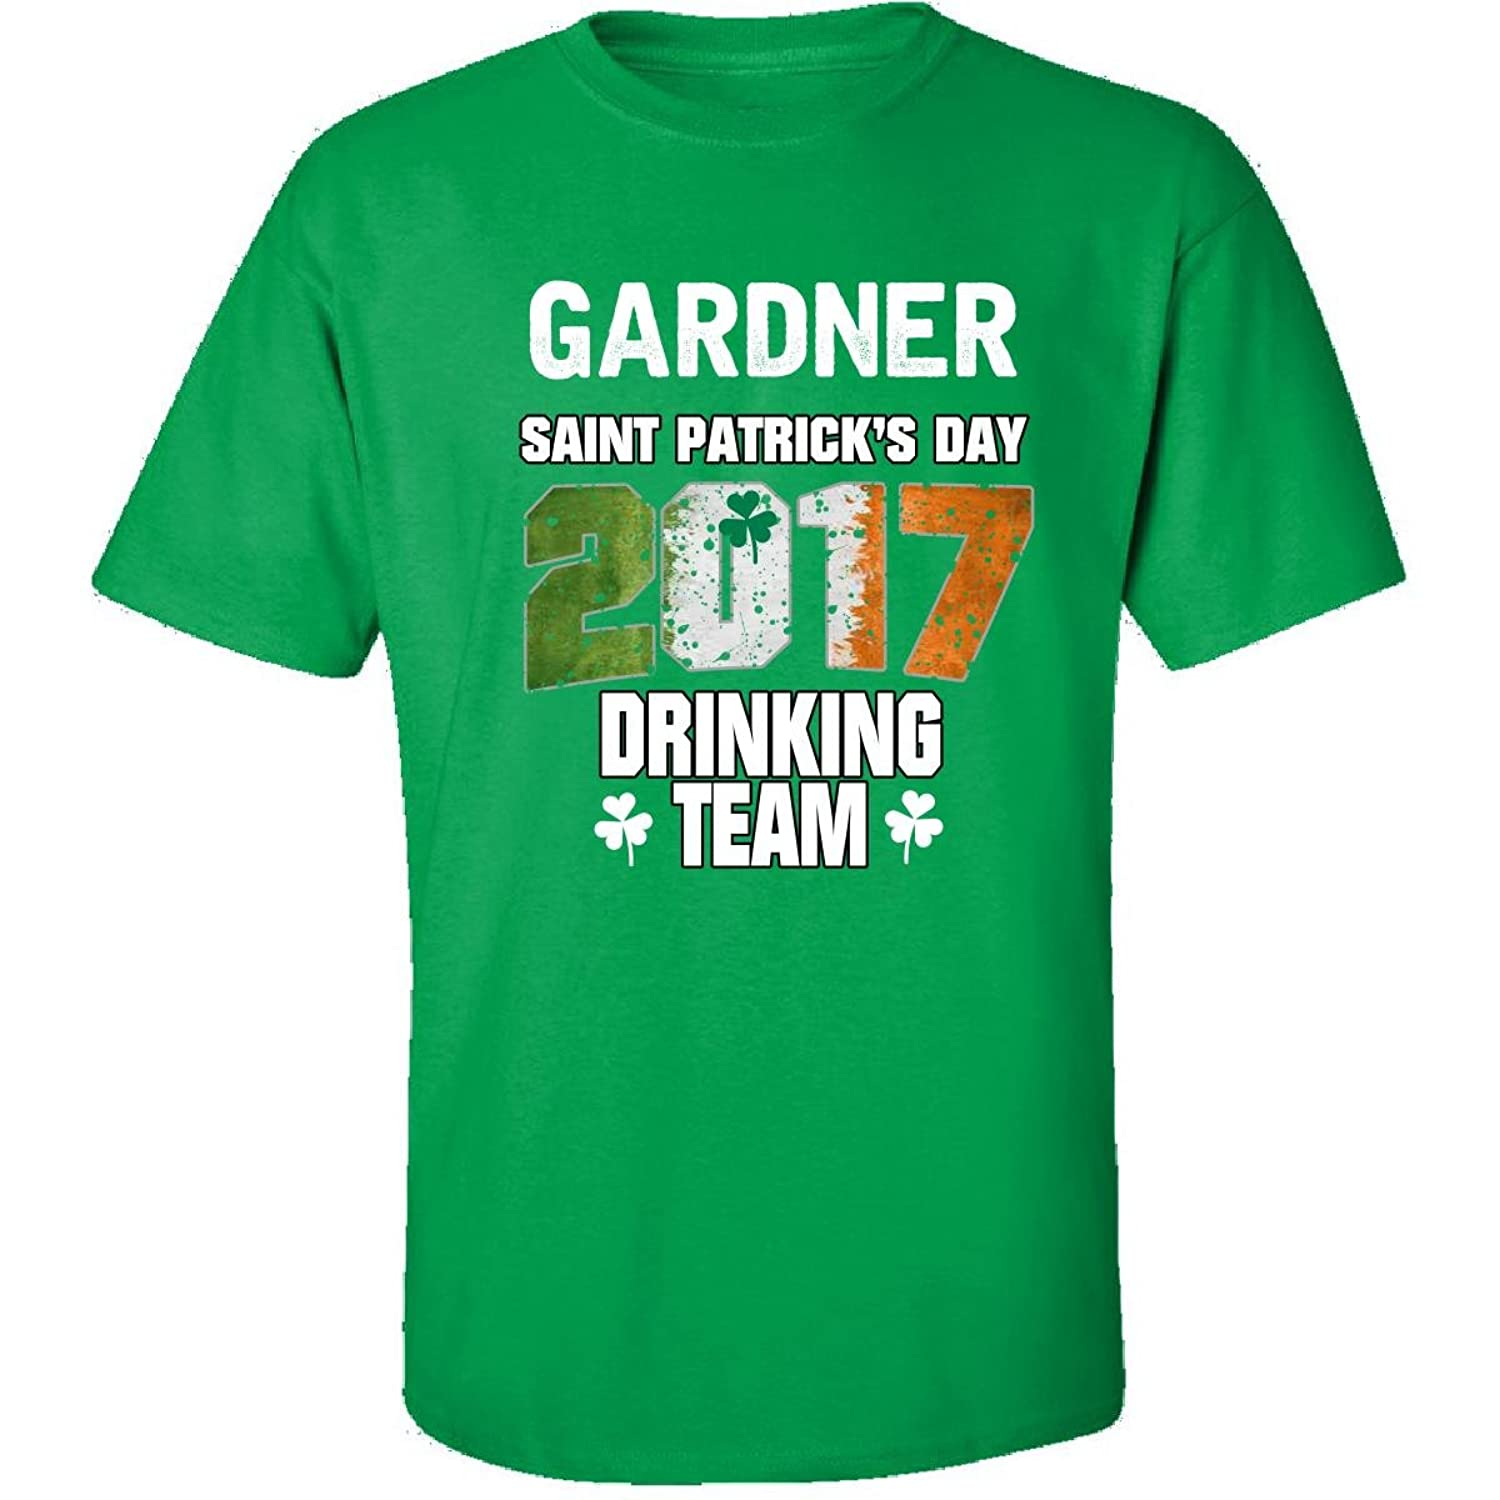 Gardner Irish St Patricks Day 2017 Drinking Team - Adult Shirt